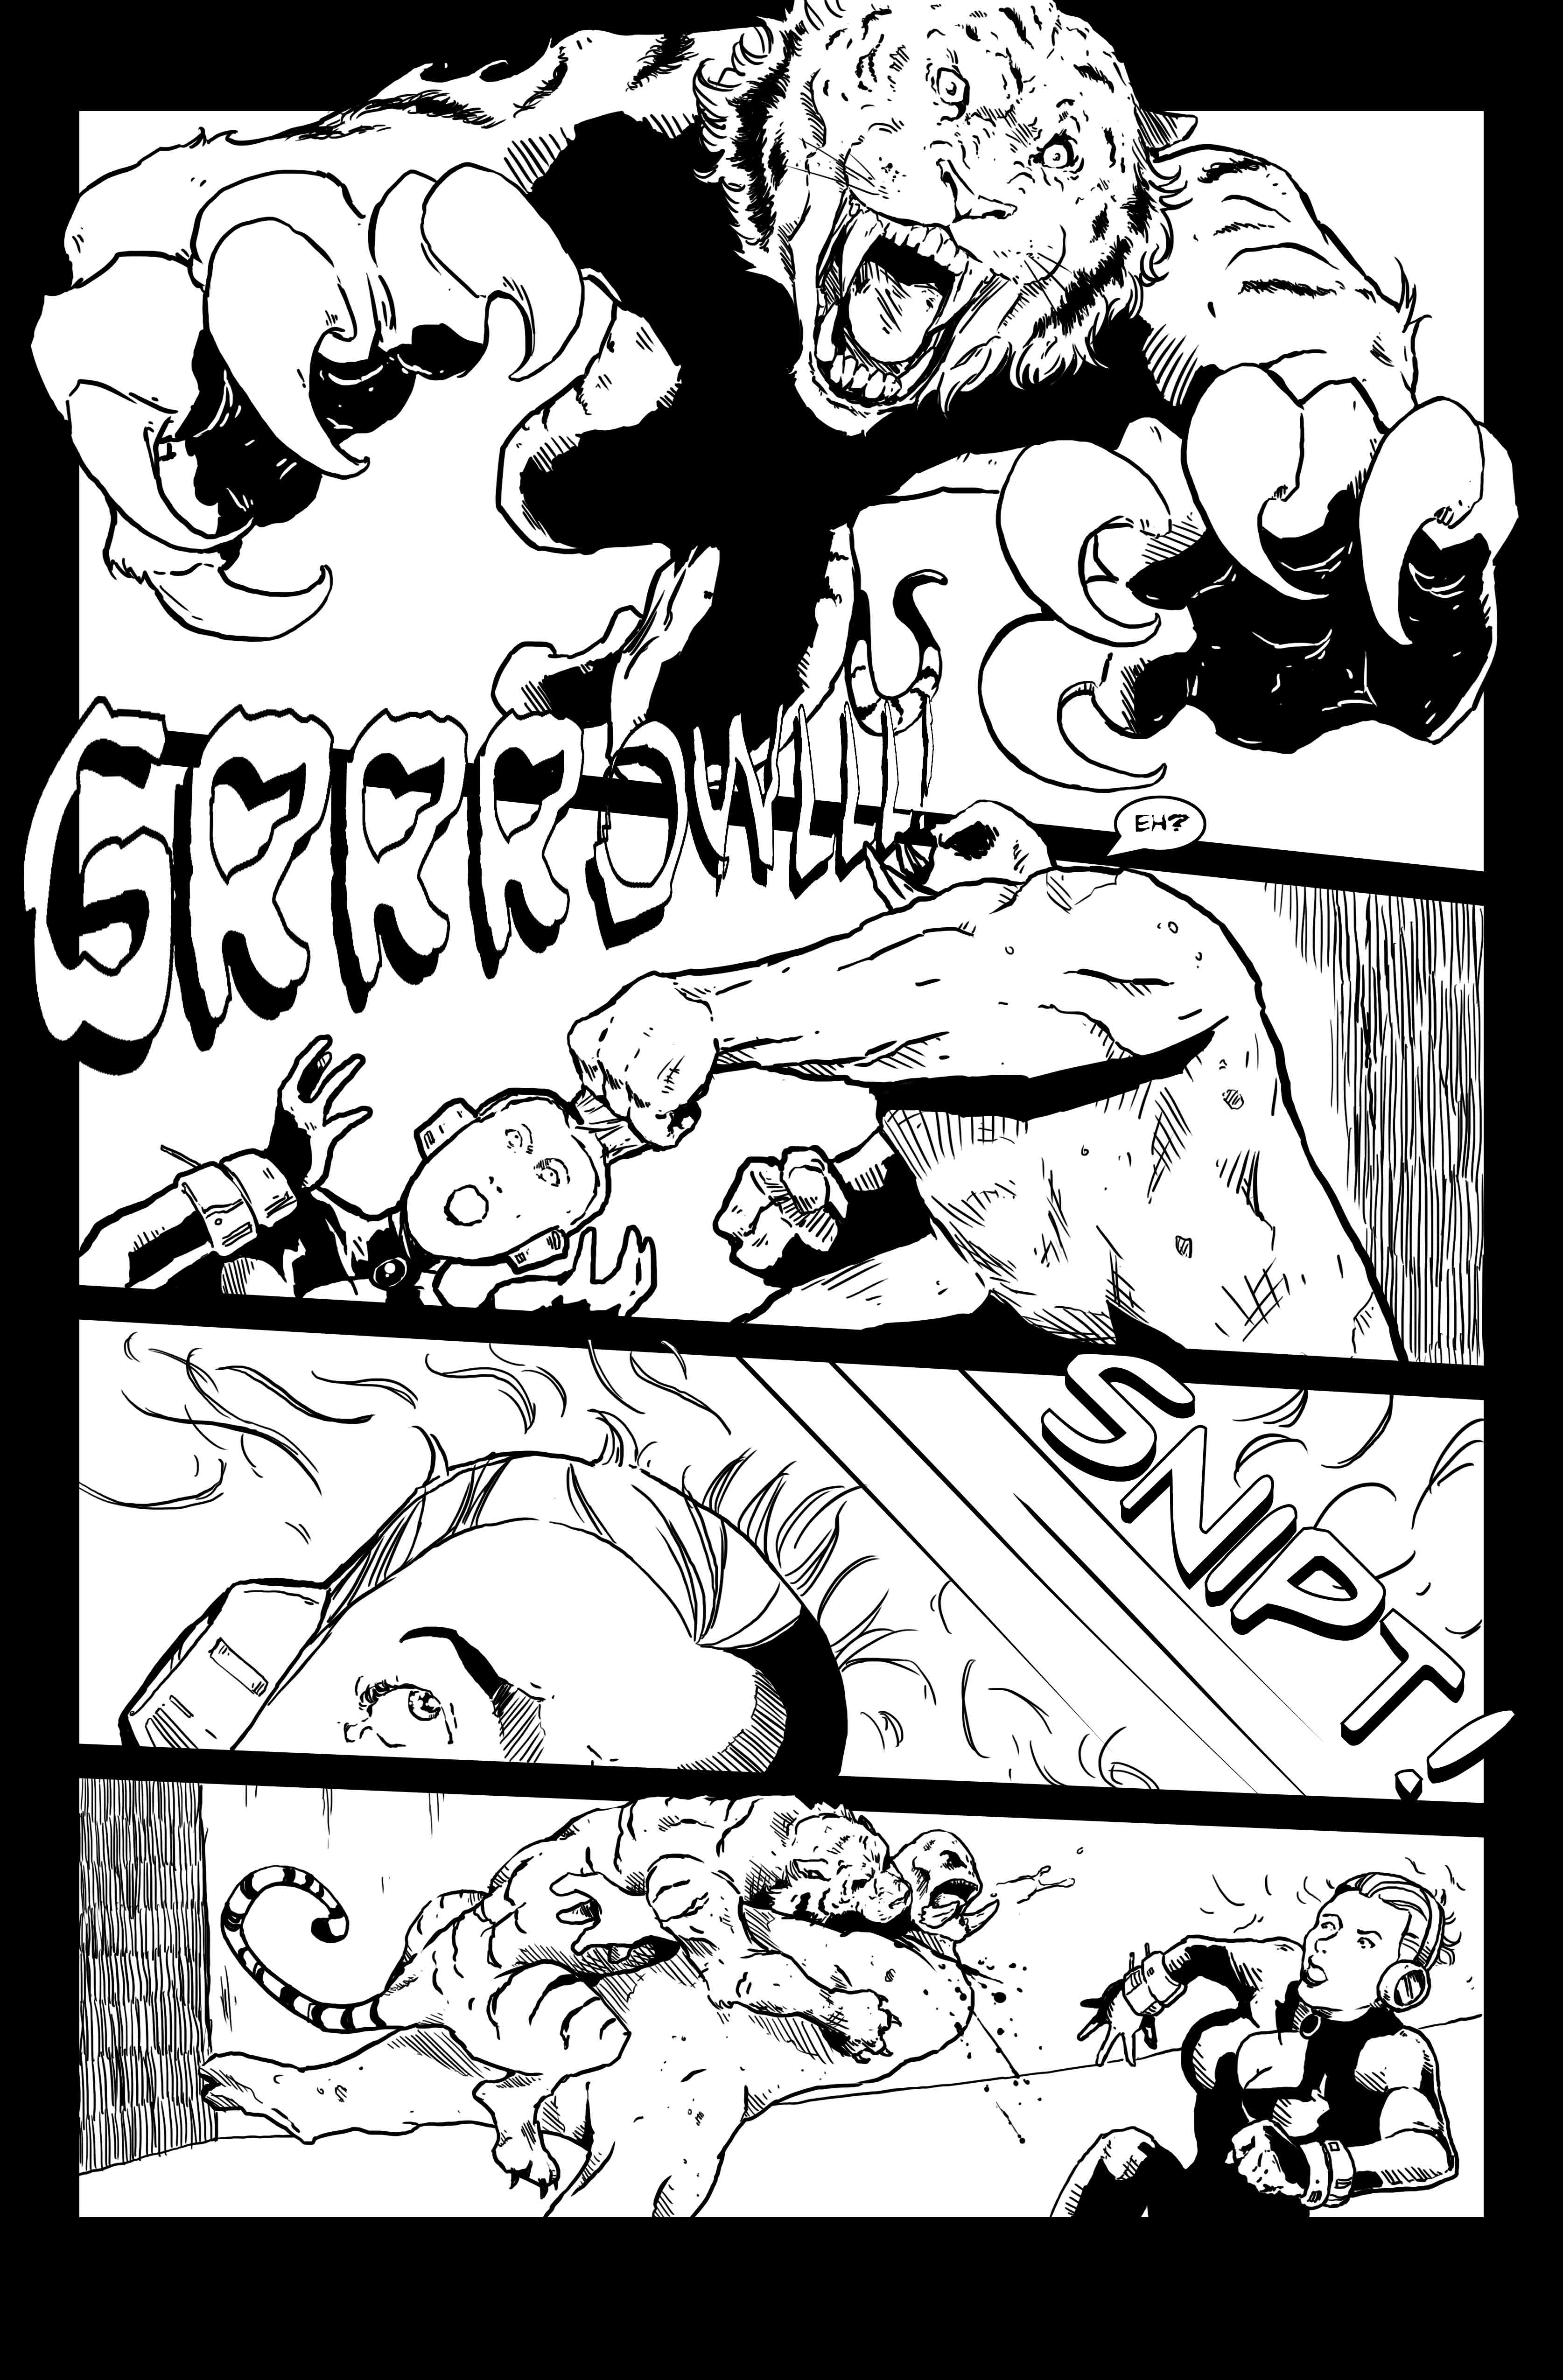 Let's Just Be Foes (issue 1, page 26)